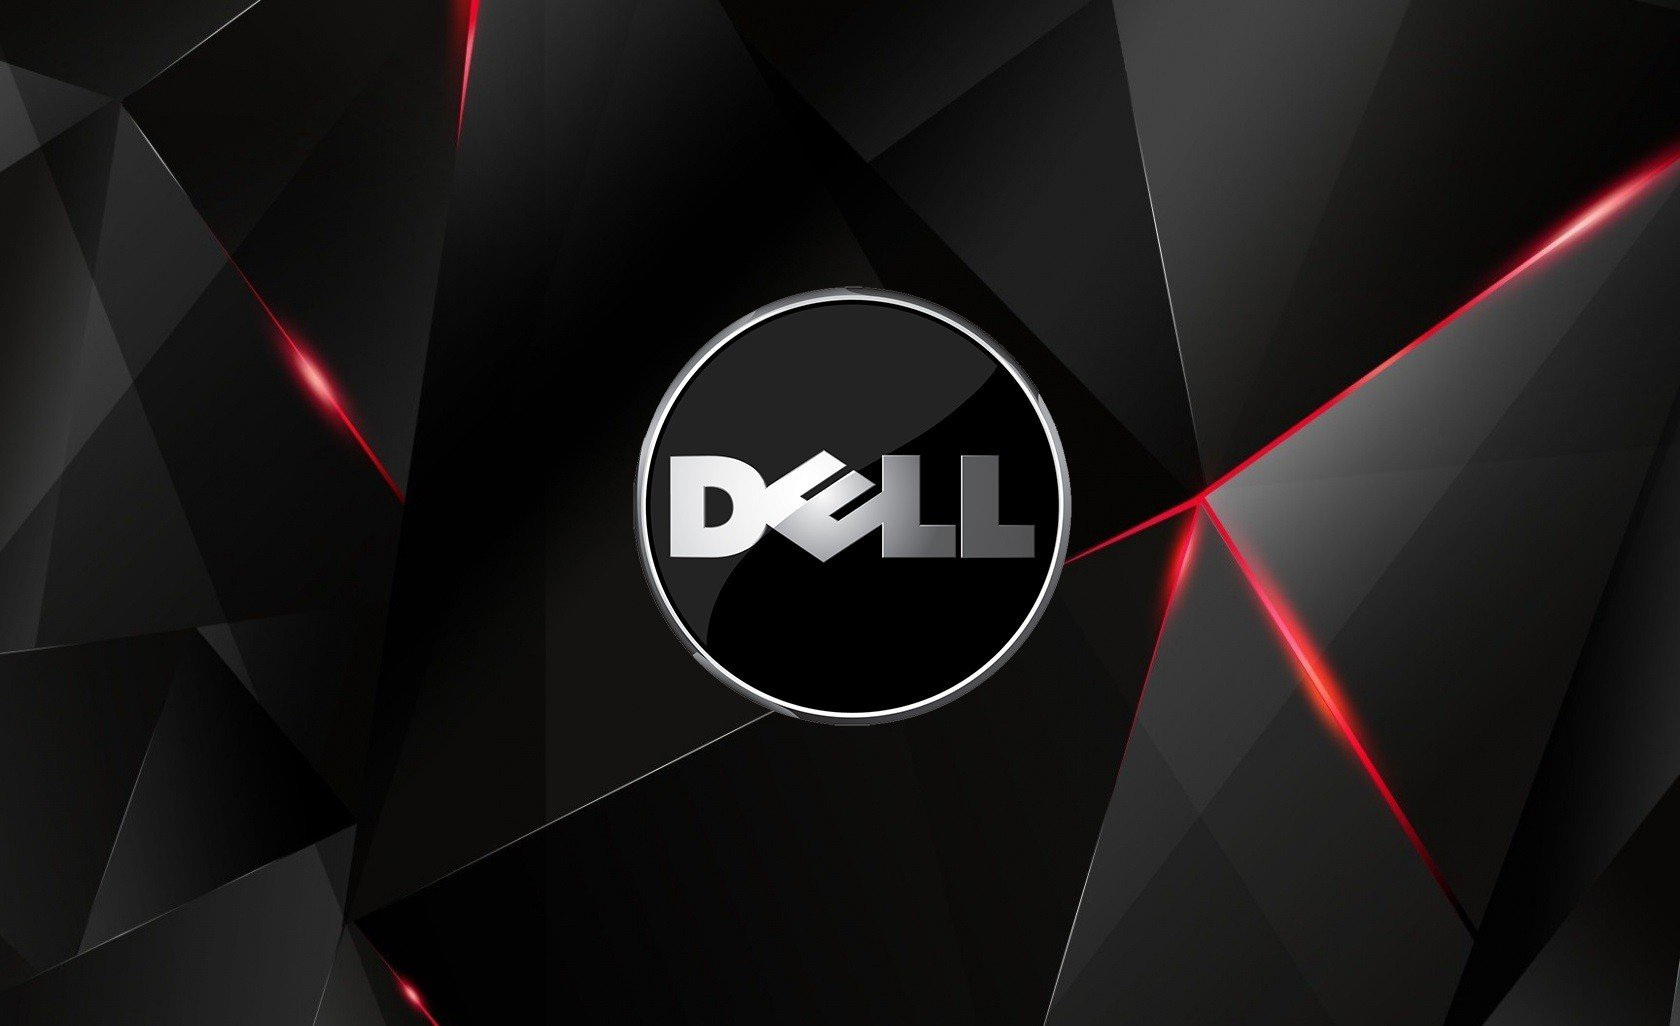 Dell Wallpaper: Computer, Dell HD Wallpapers / Desktop And Mobile Images